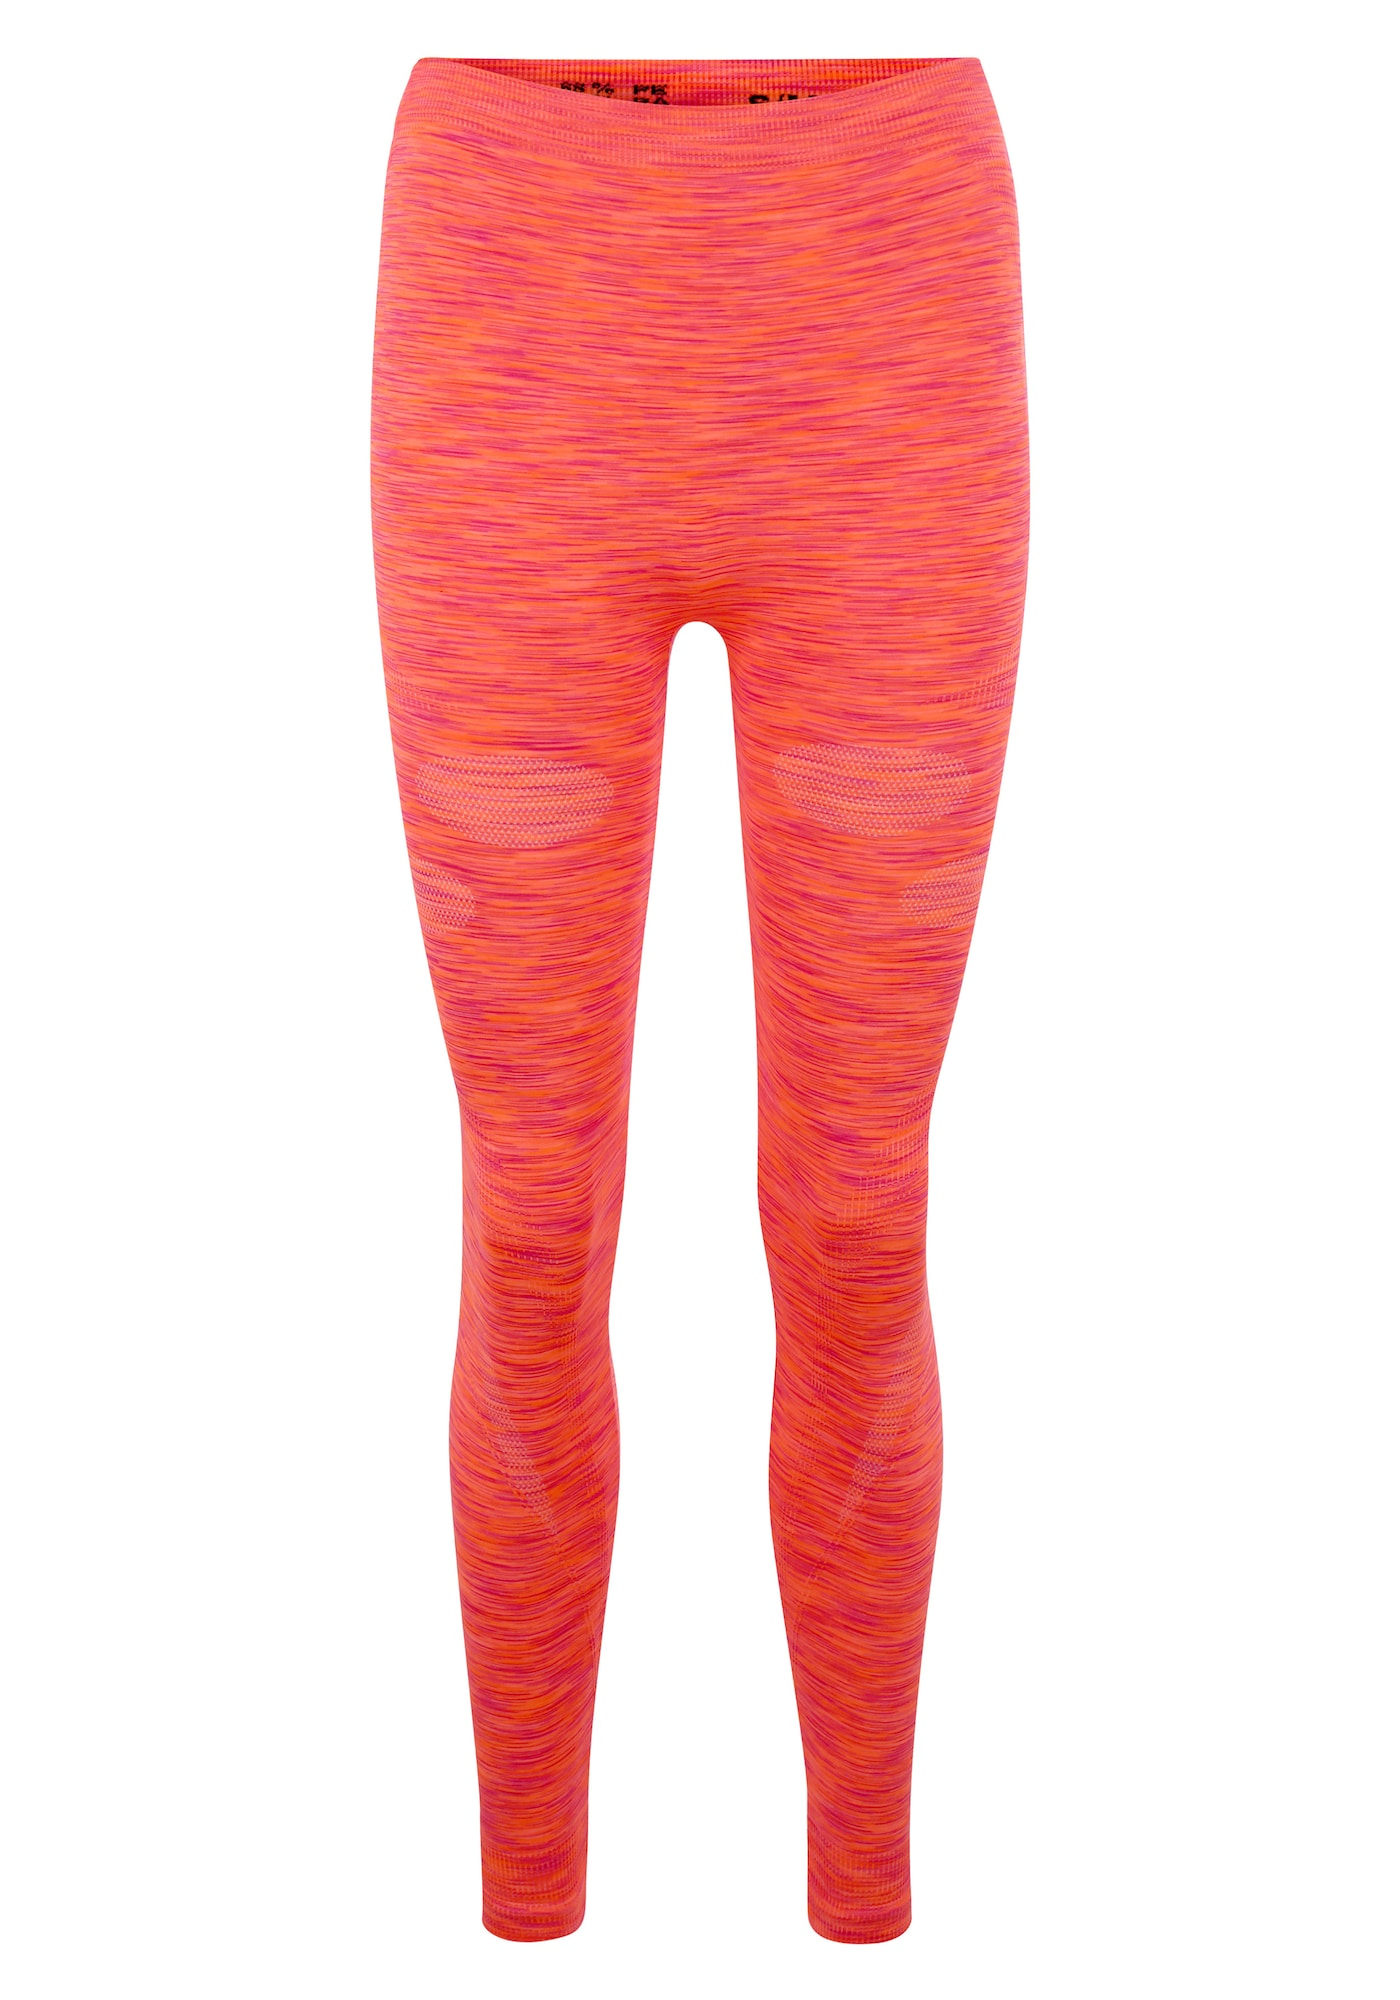 Tights 'Battipaglia' | Sportbekleidung > Sporthosen > Tights | ENDURANCE